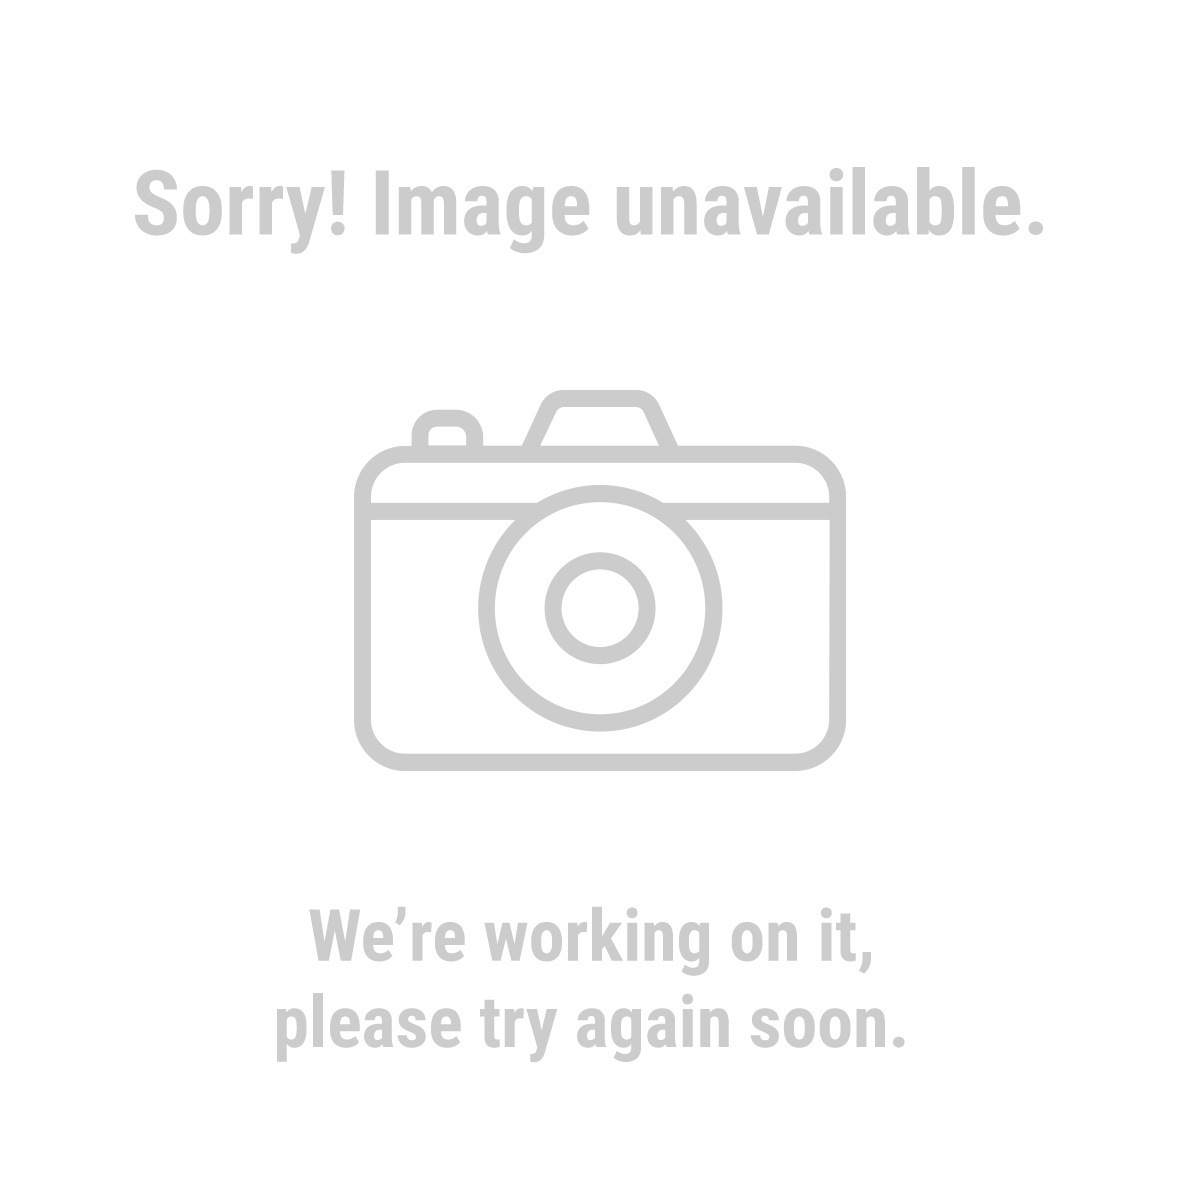 Pittsburgh 96416 13 Piece Metric Ball End Hex Key Set